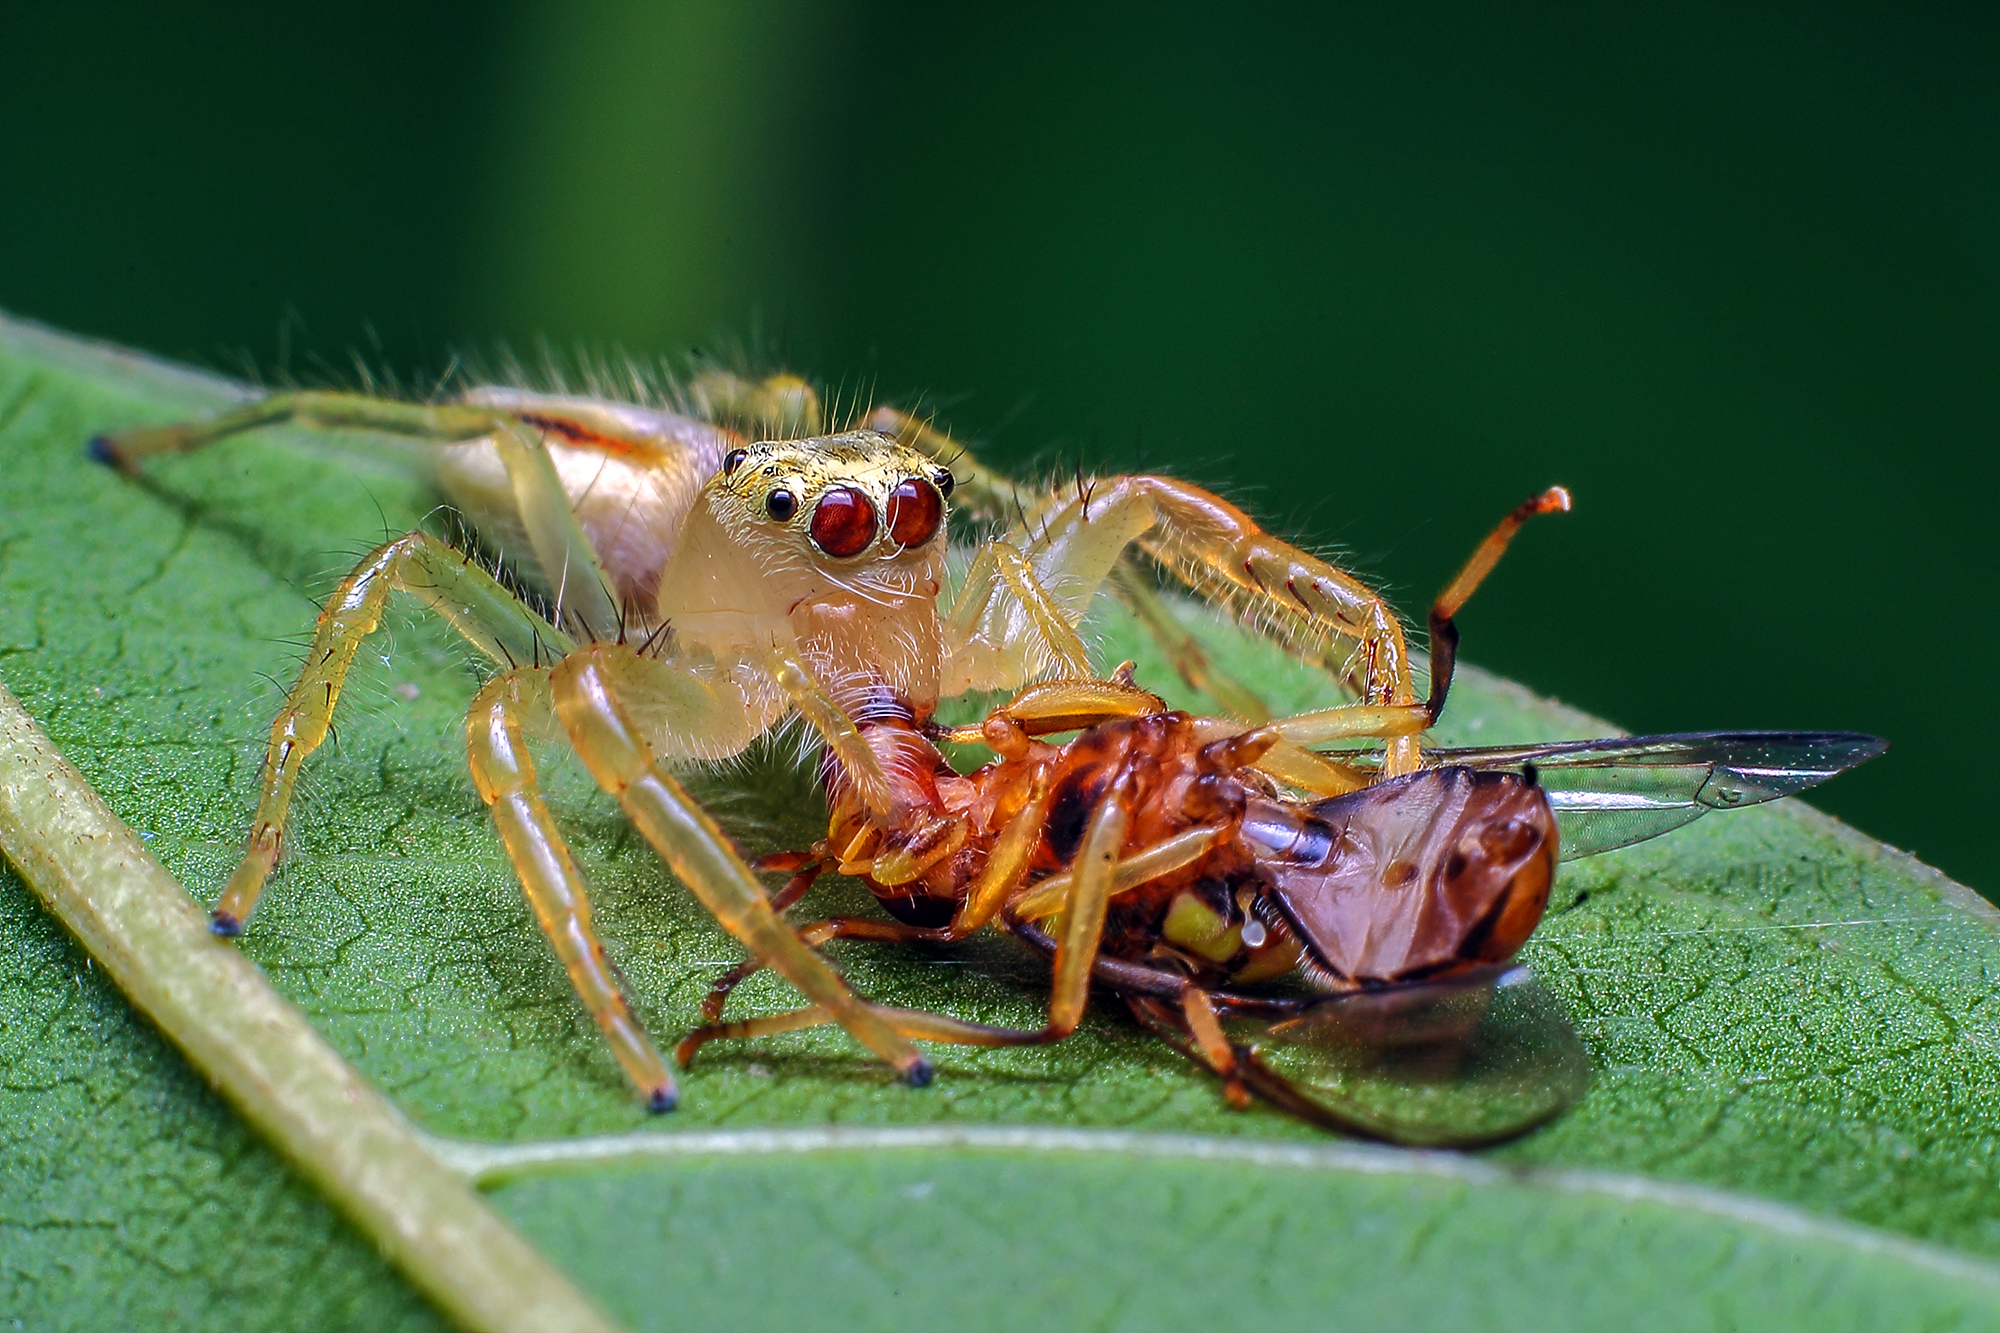 Two striped jumping spider - Telamonia species